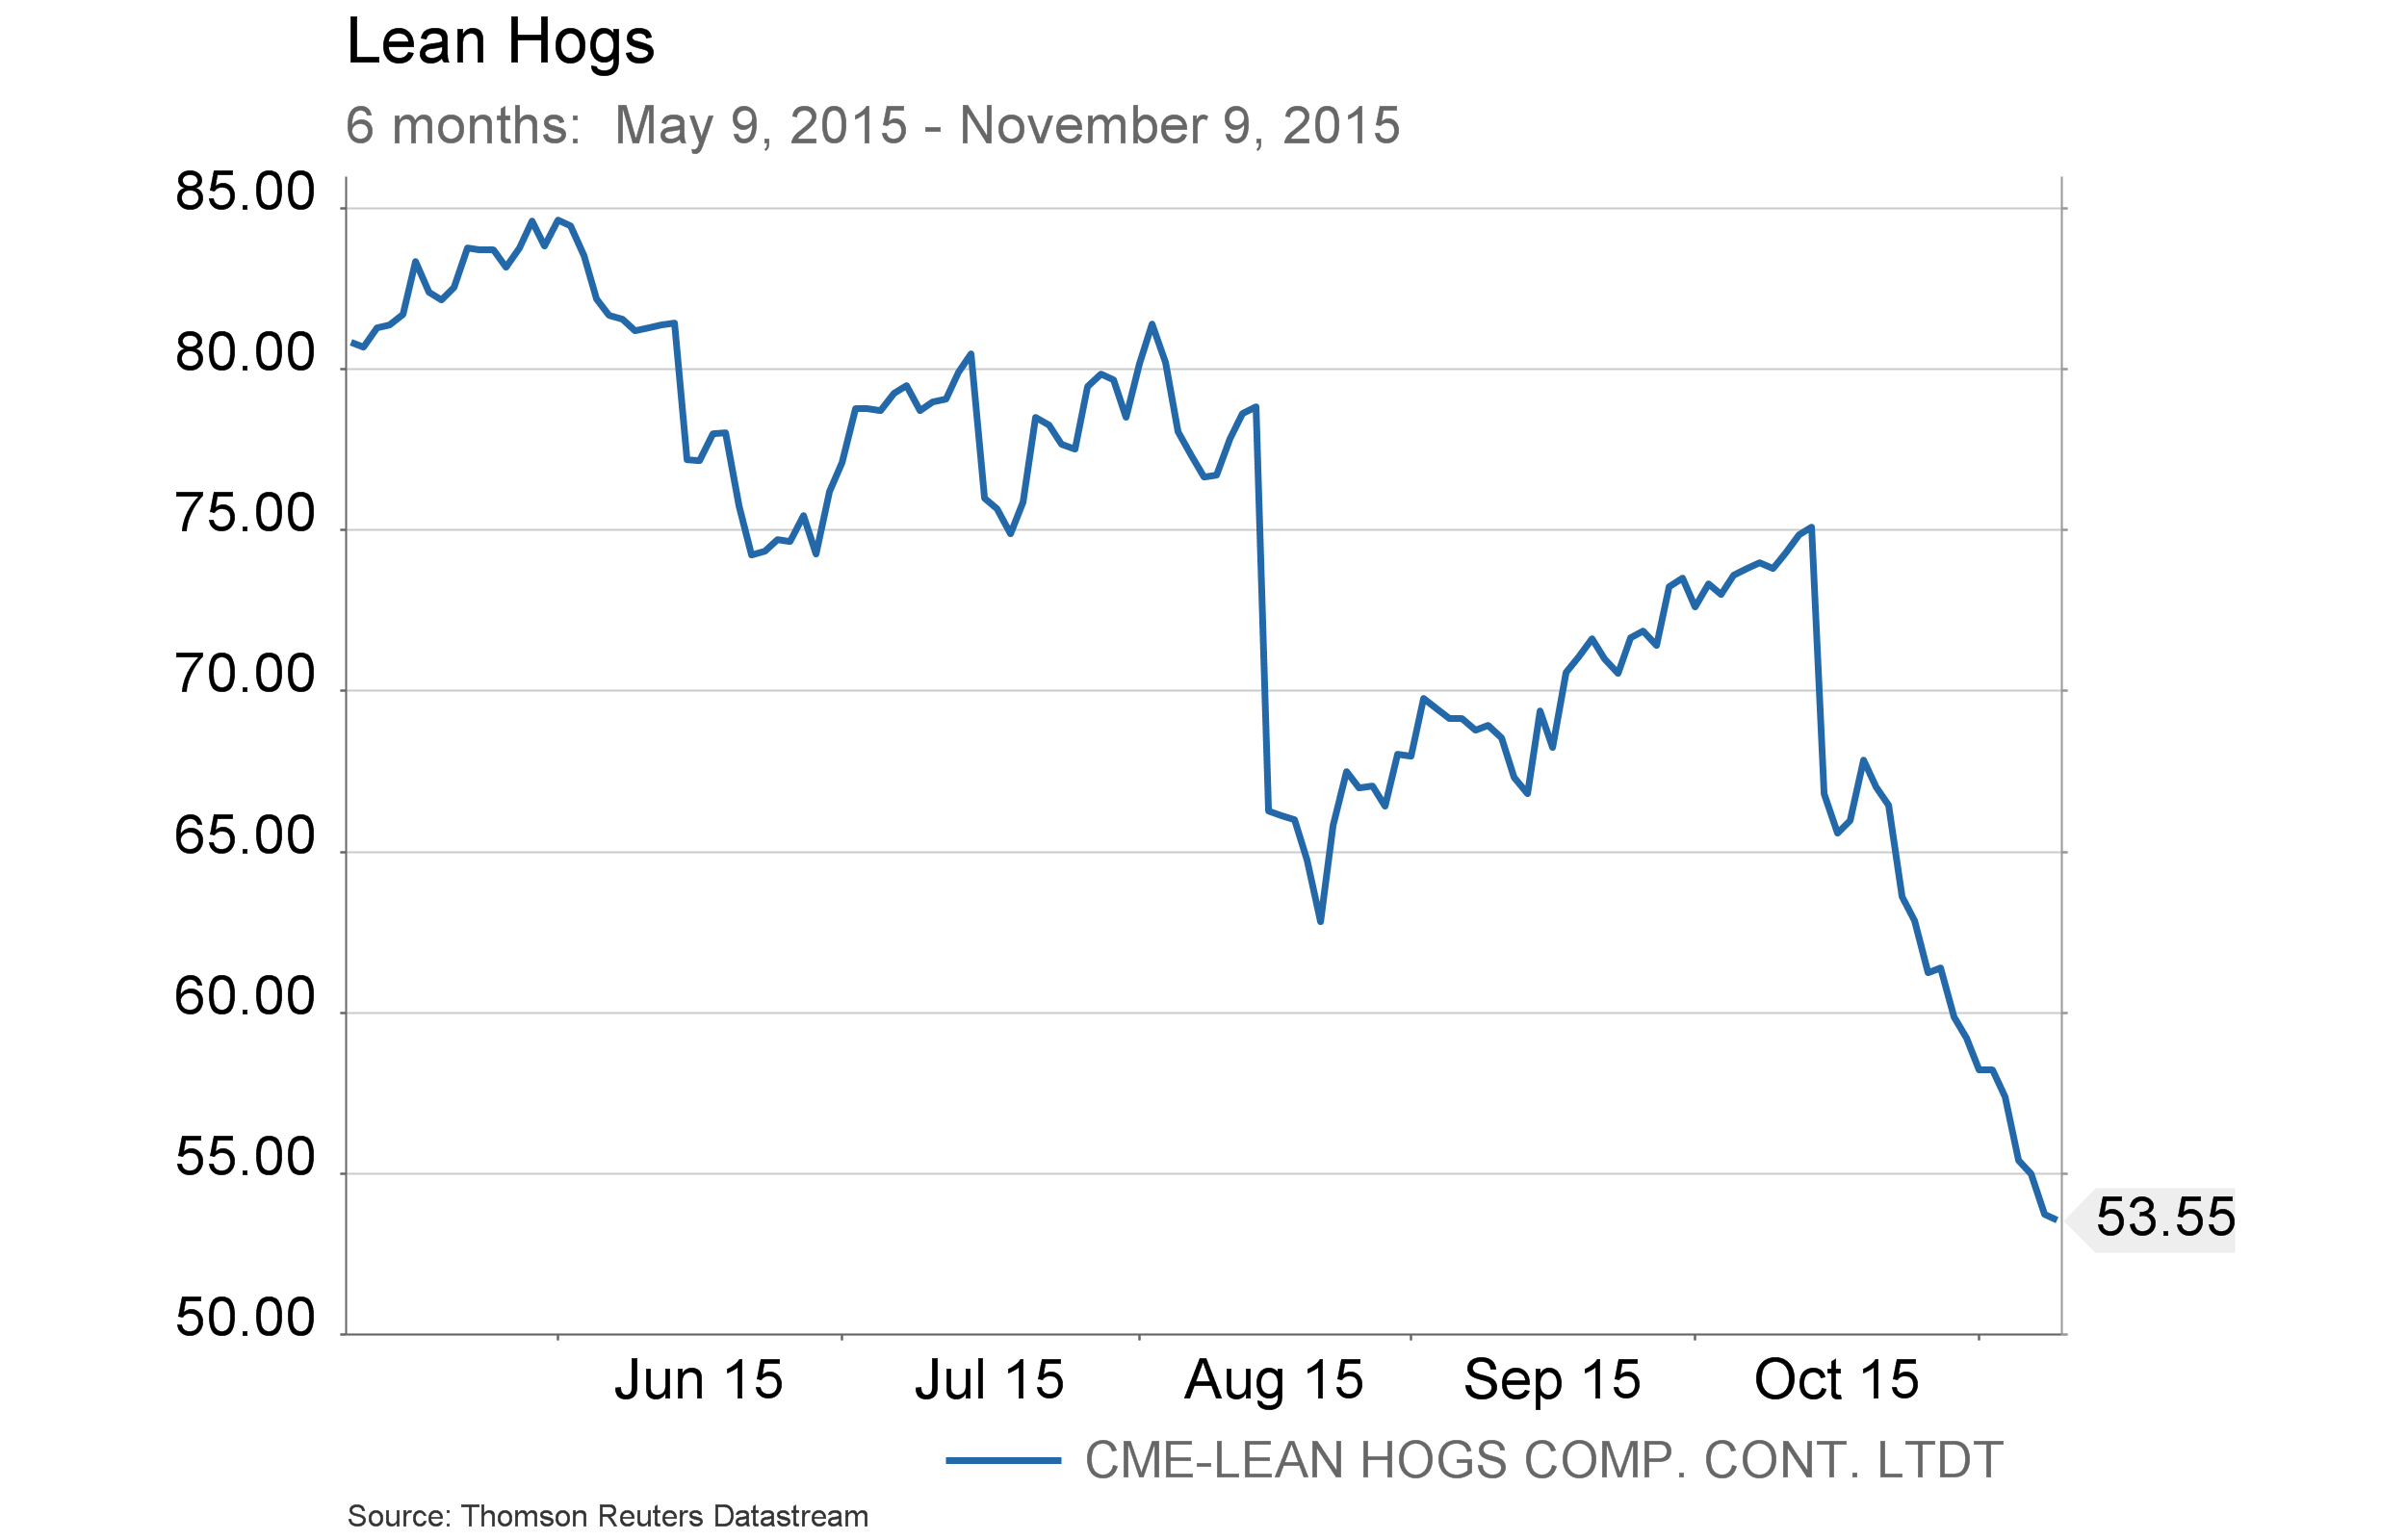 Conference Call charts - Lean Hogs - 6 months 2 - 6 months